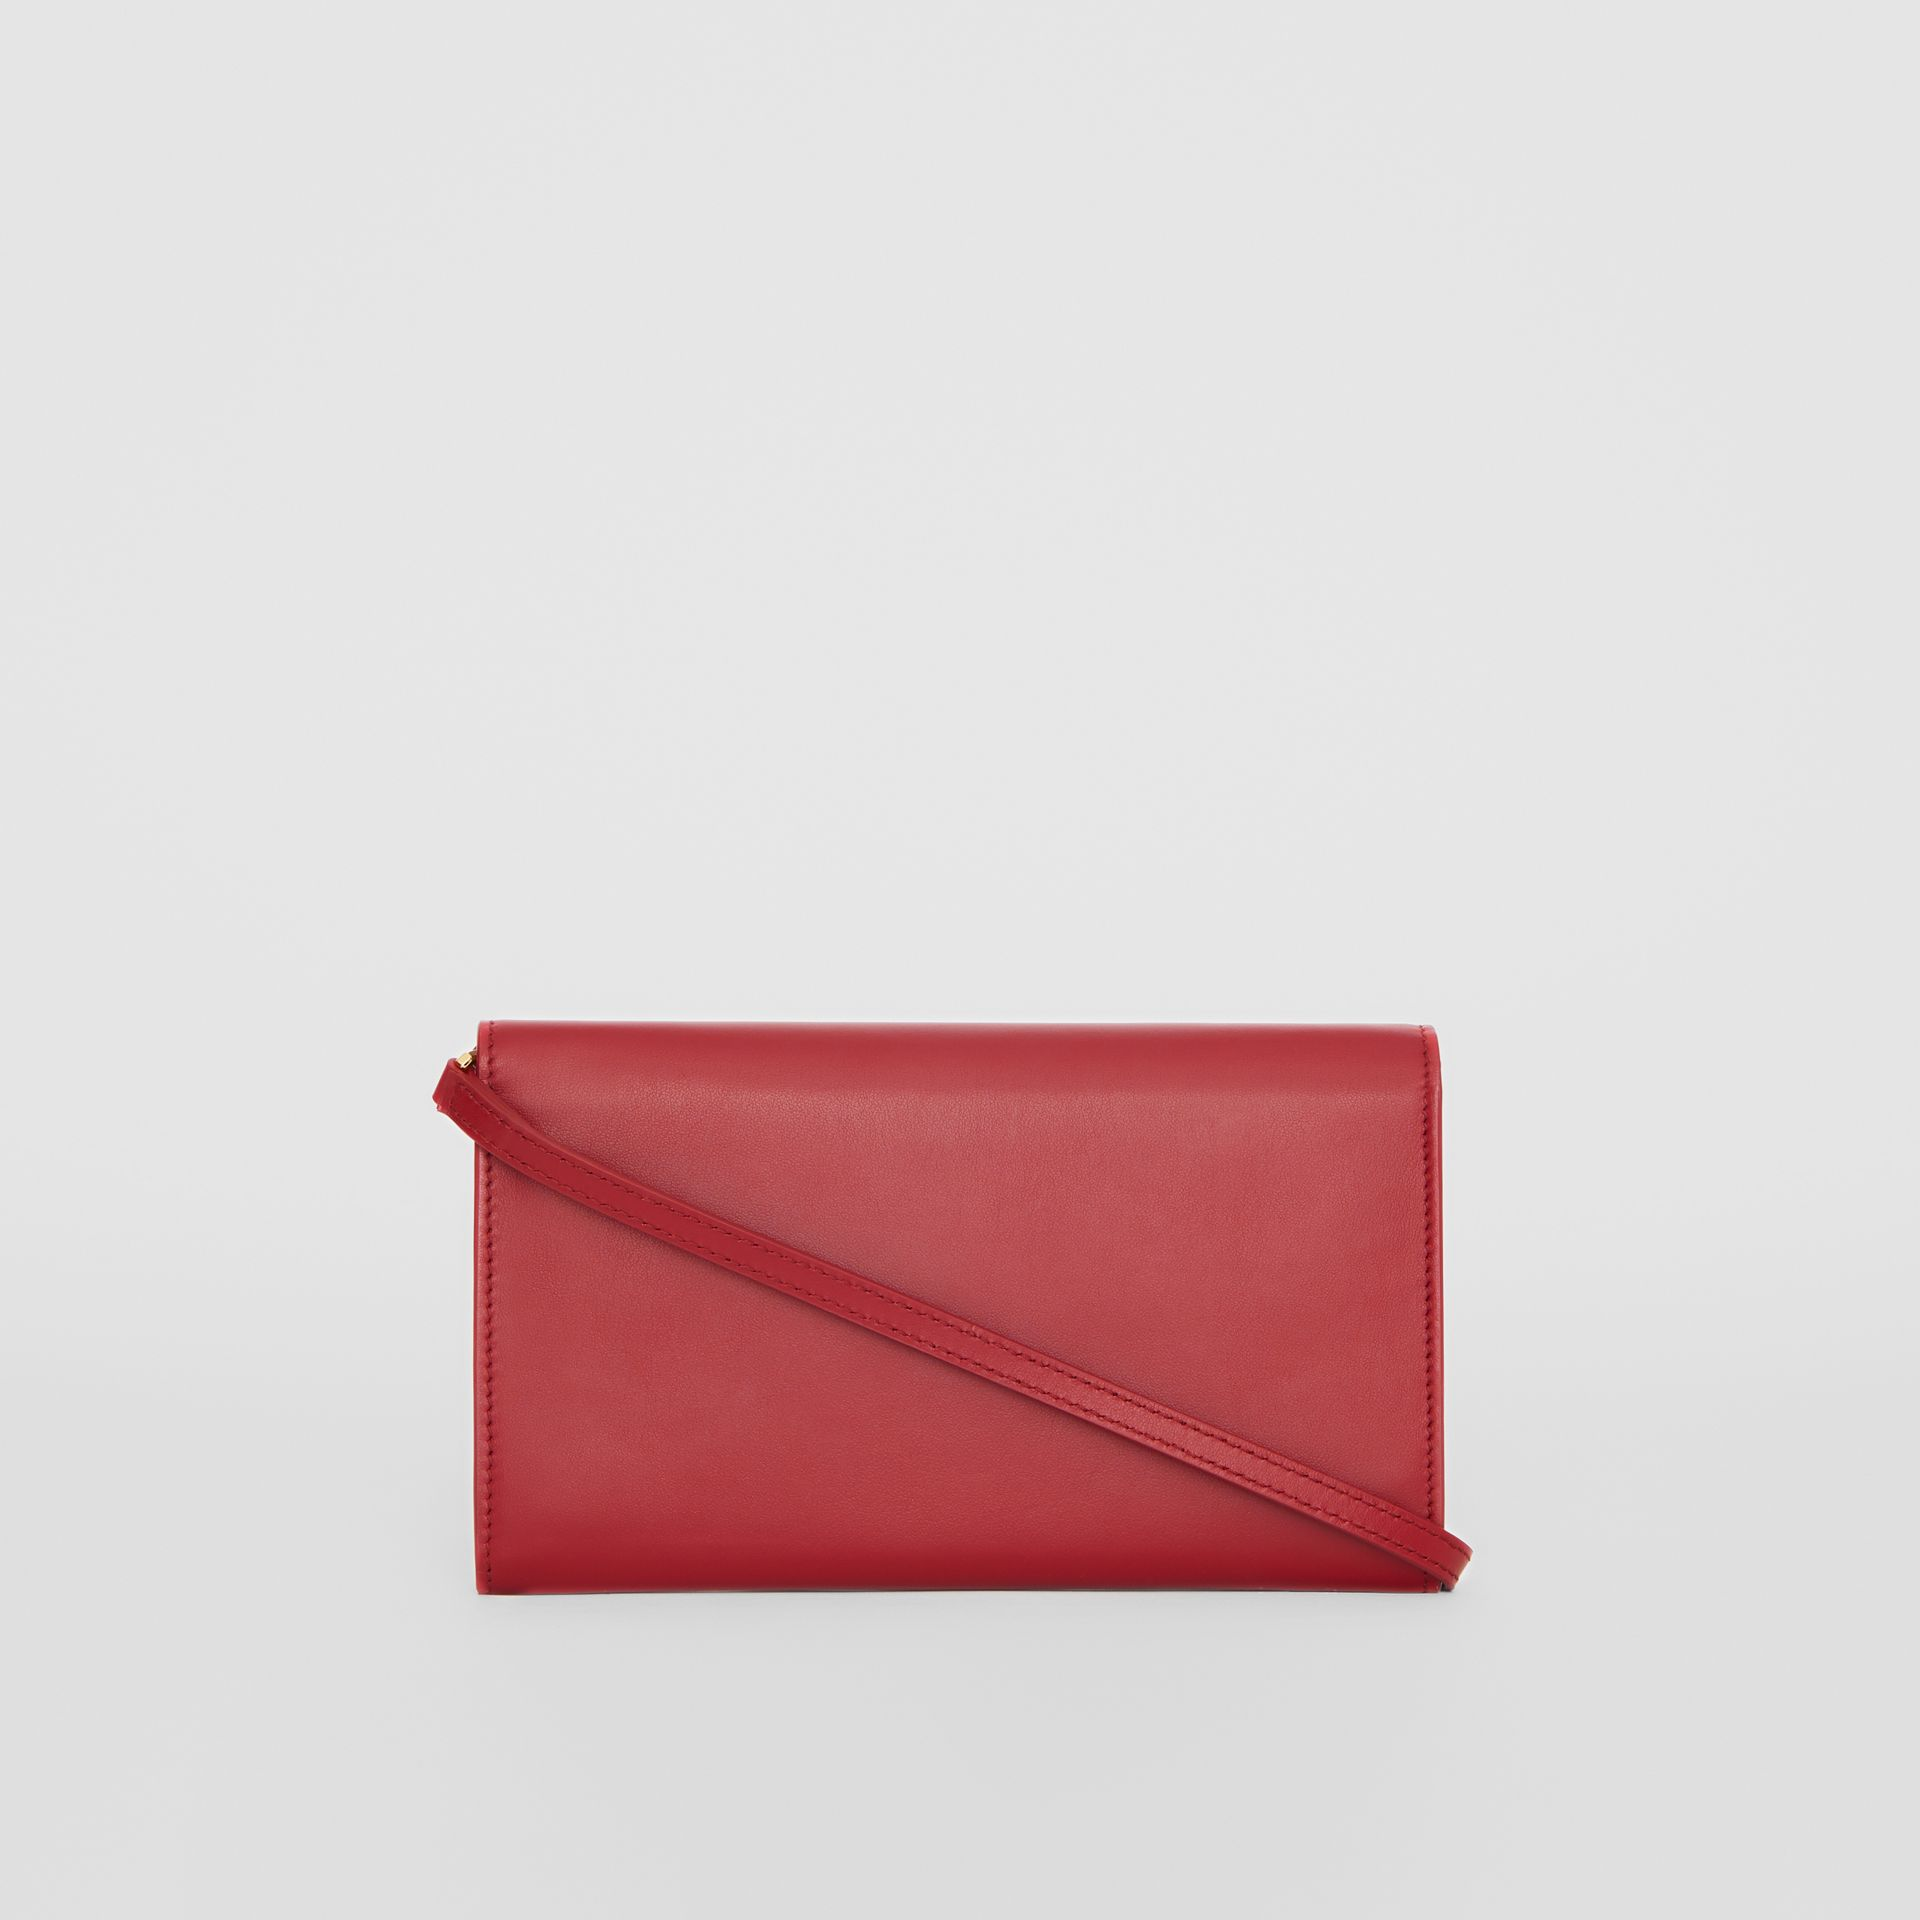 Monogram Motif Leather Wallet with Detachable Strap in Crimson - Women | Burberry Singapore - gallery image 7